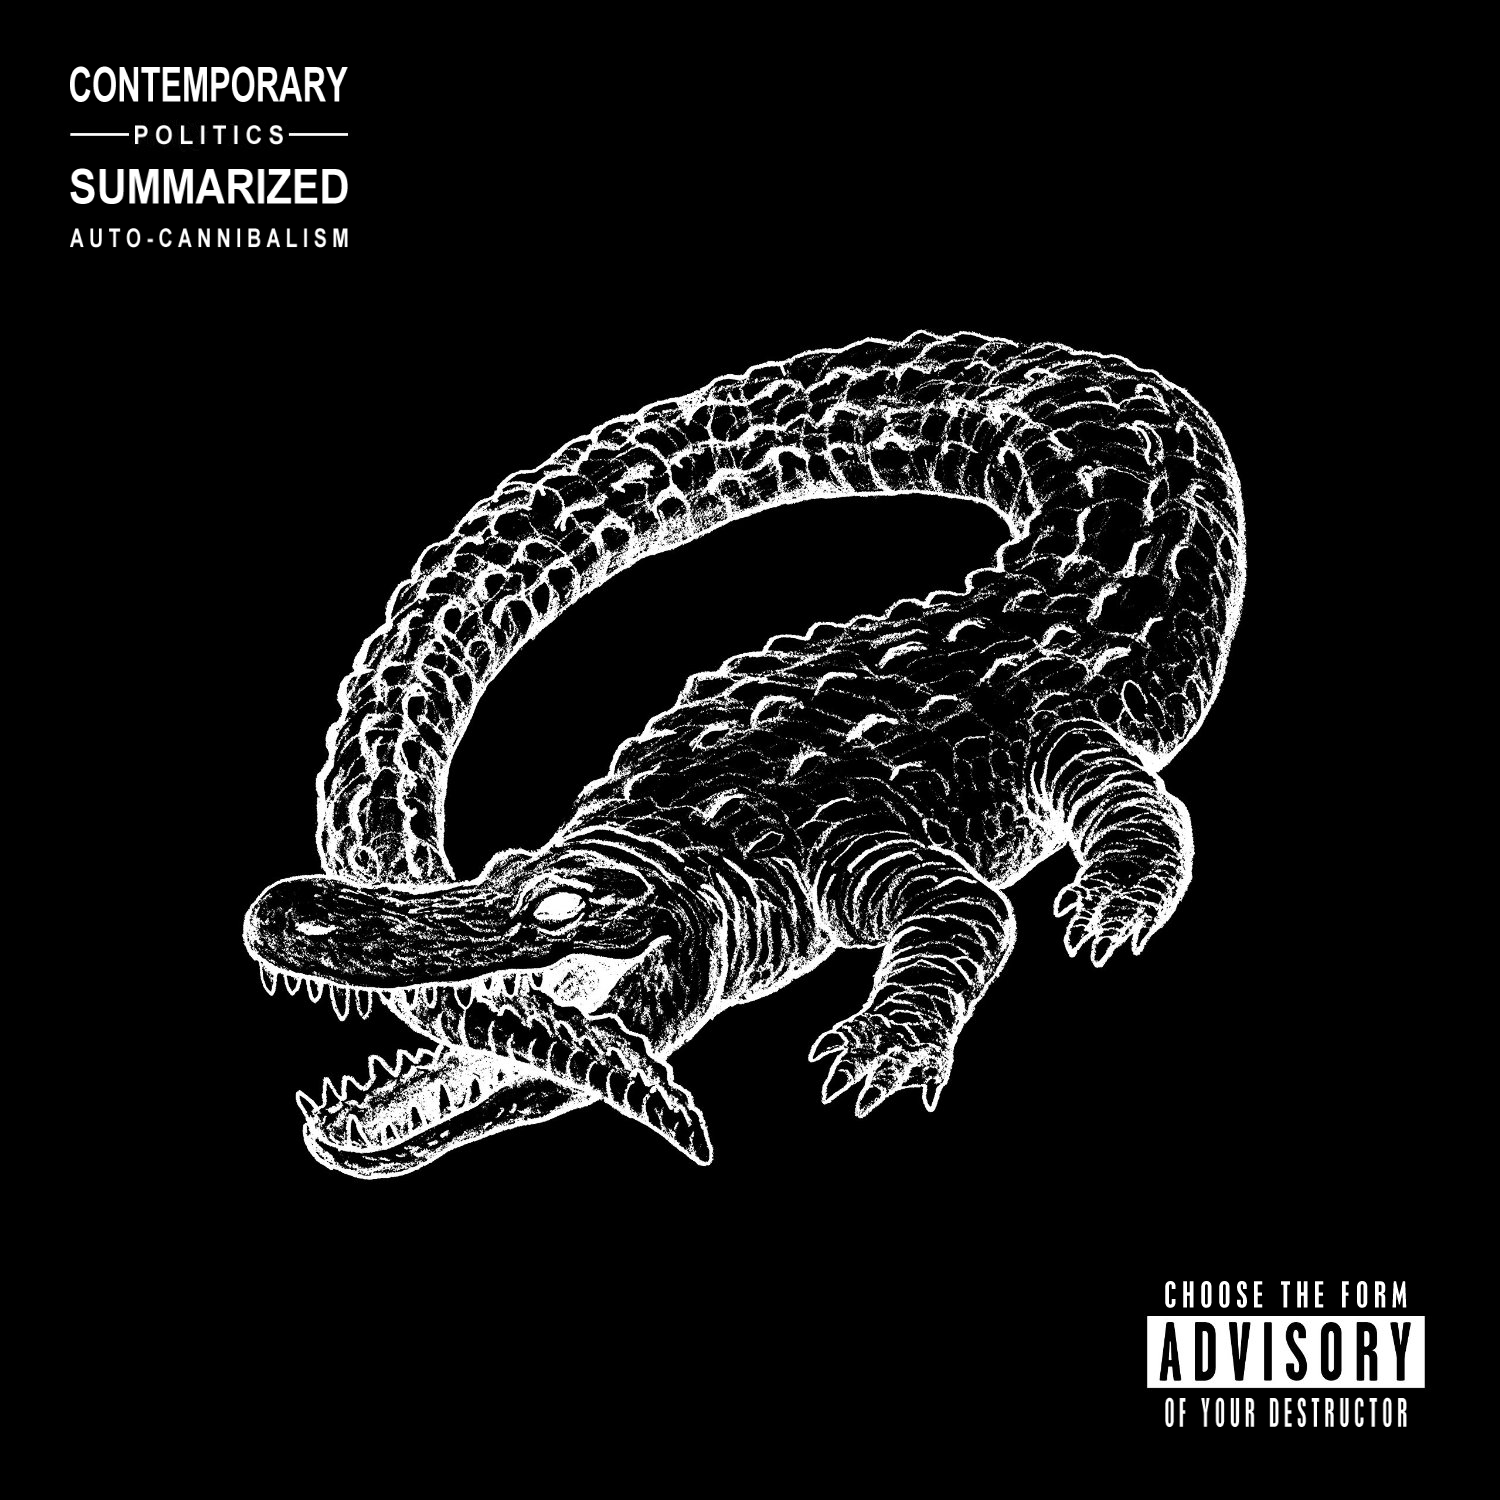 Album cover parody of The Ride [Explicit] by Catfish and the Bottlemen